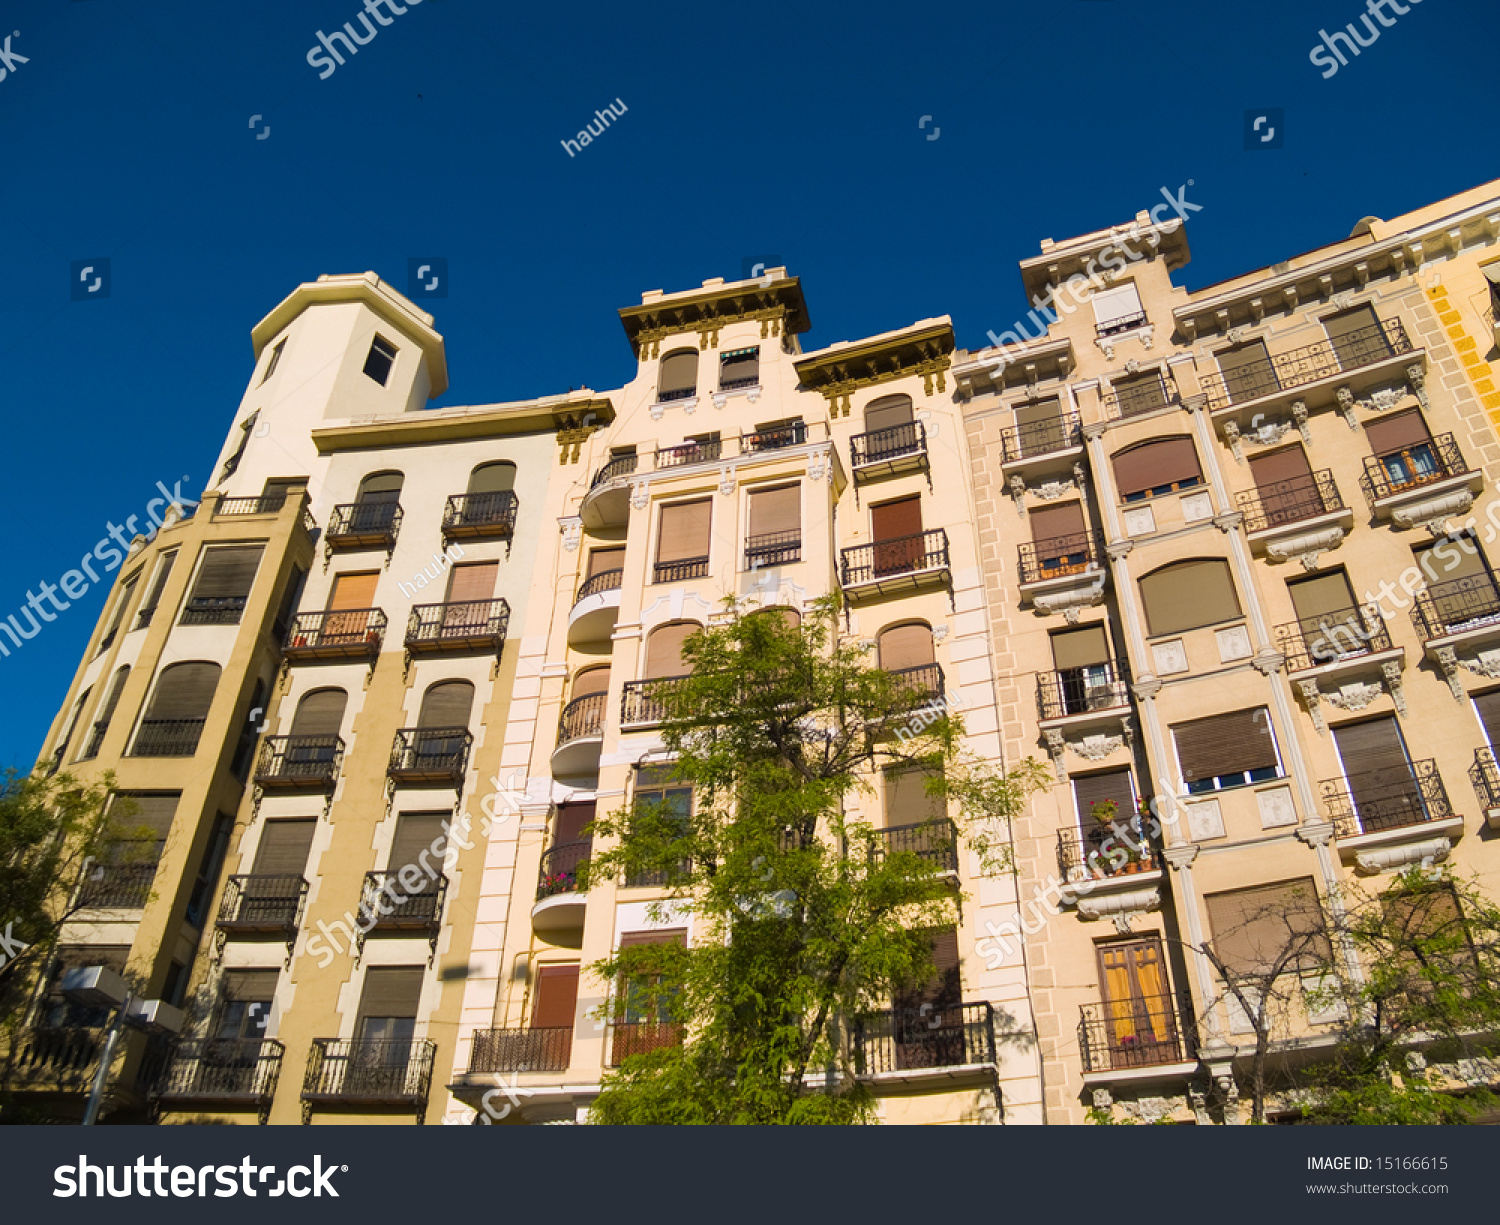 Apartment Buildings In Madrid, Spain. Stock Photo 15166615 ...